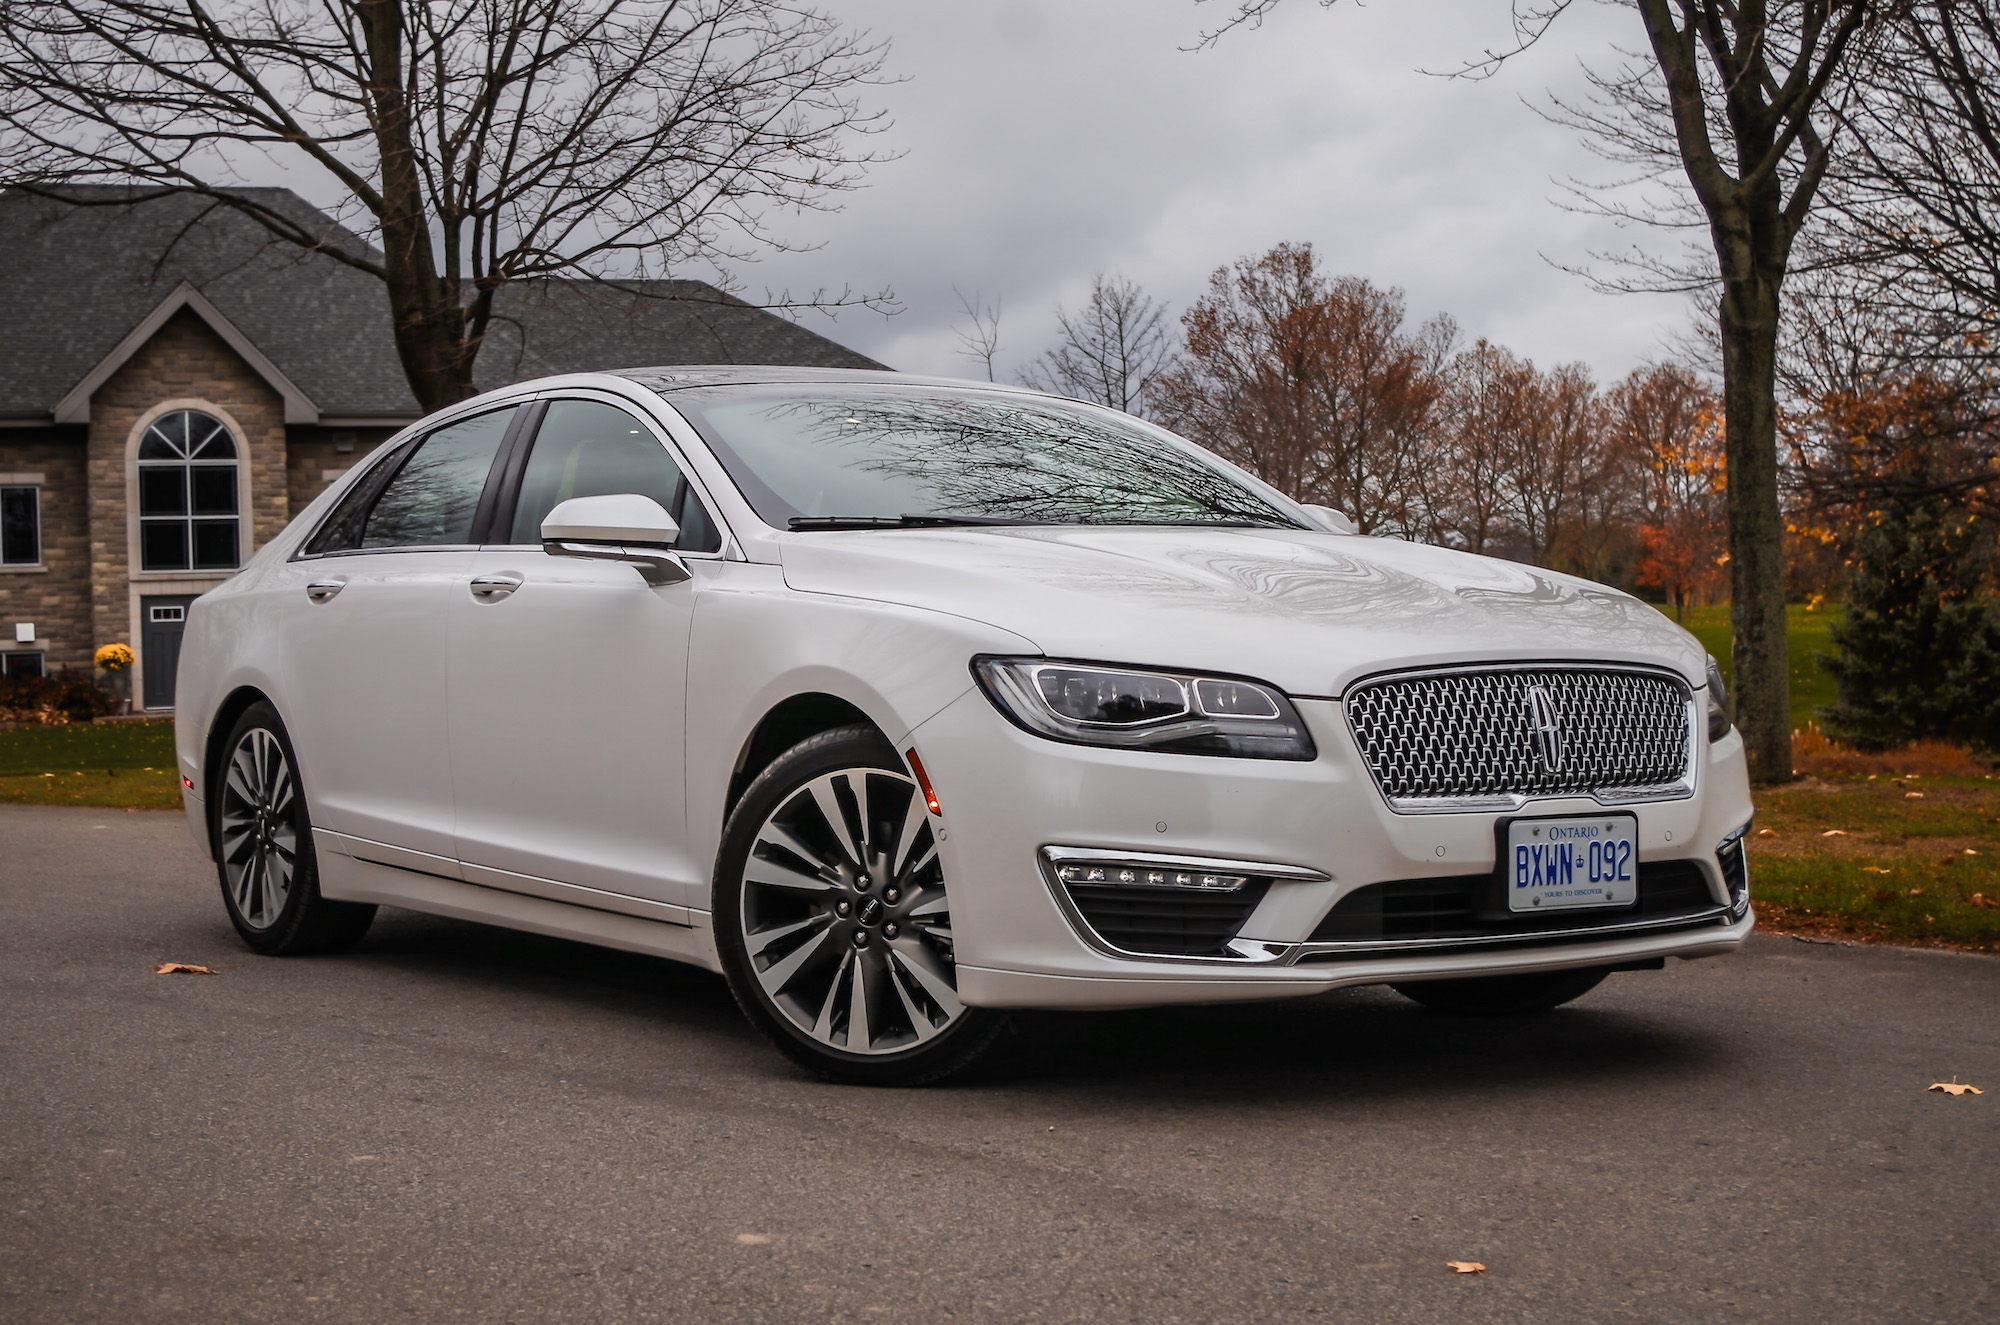 Review 2017 lincoln mkz hybrid canadian auto review - 2017 lincoln mkz hybrid interior ...